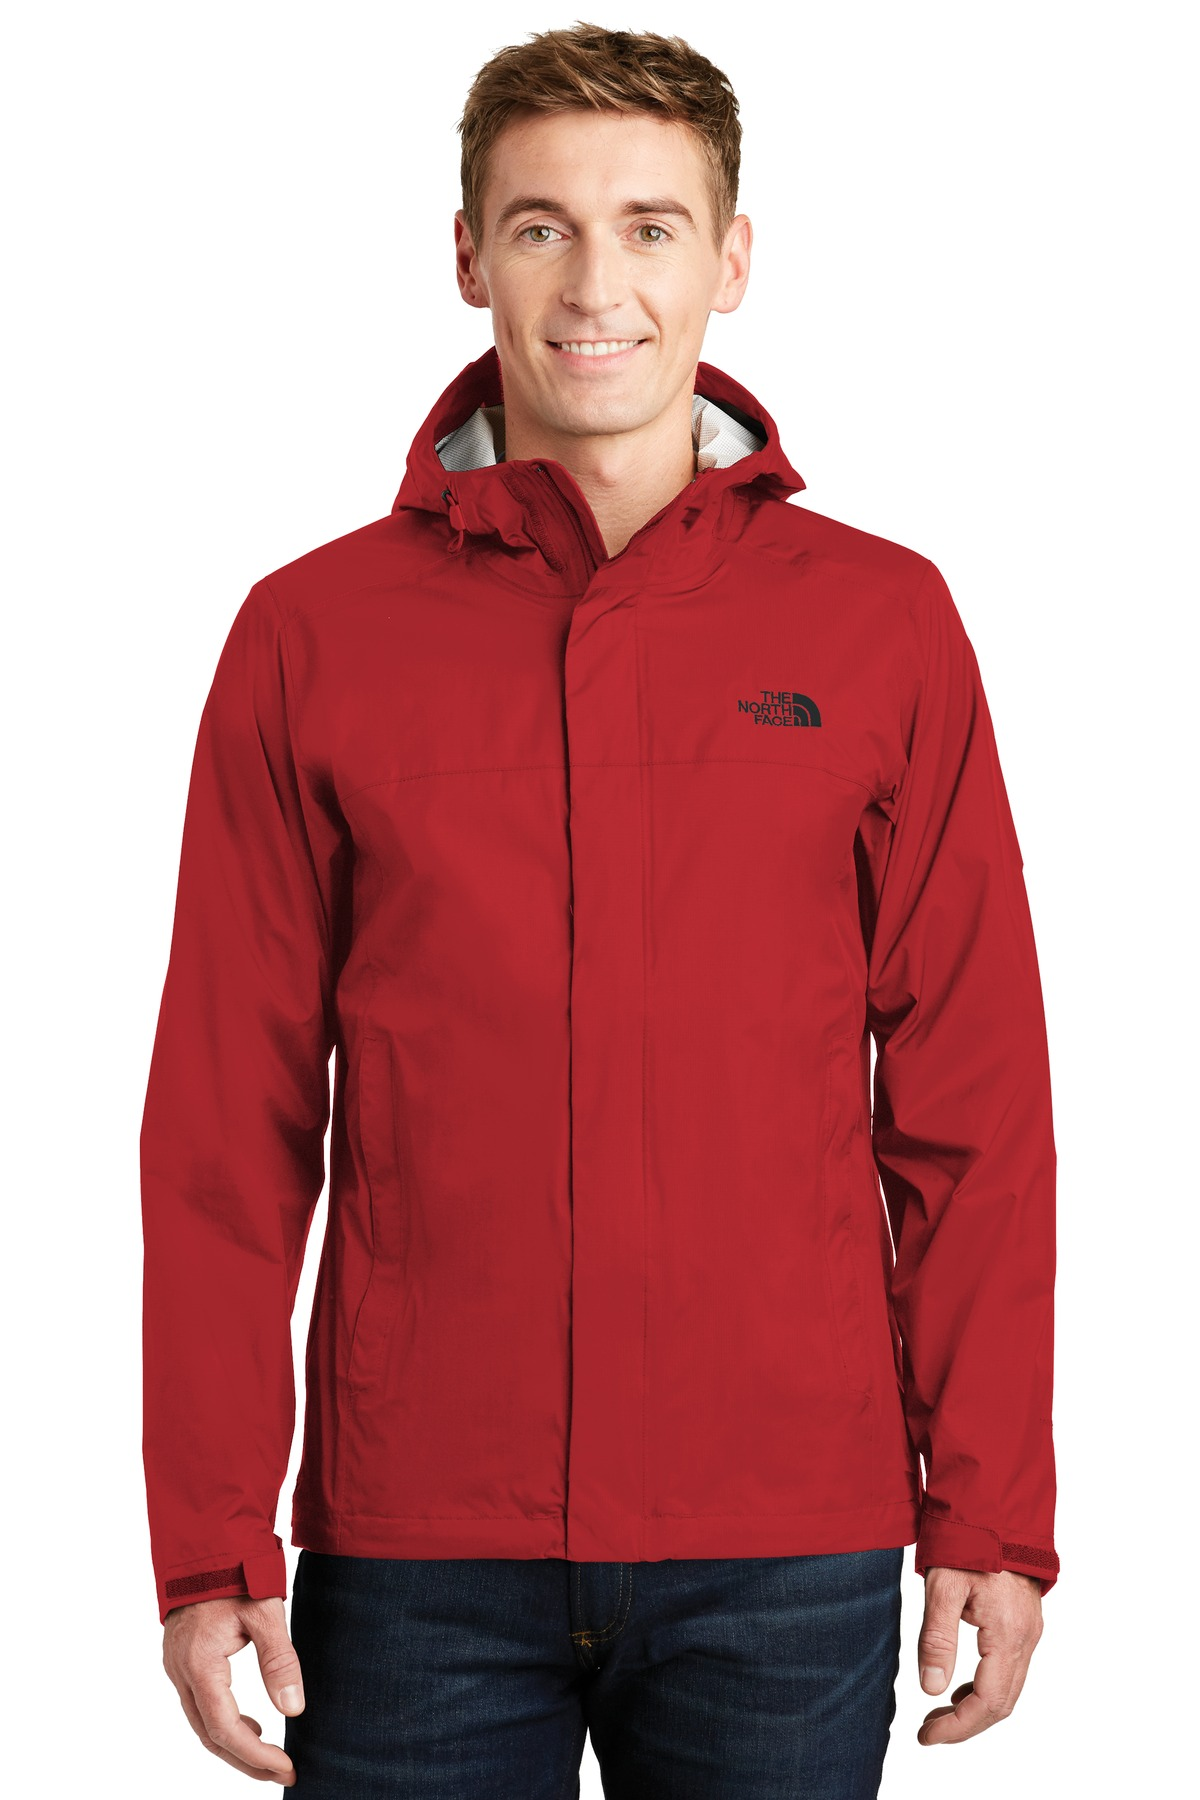 The North Face  ®  DryVent ™  Rain Jacket. NF0A3LH4 - Rage Red